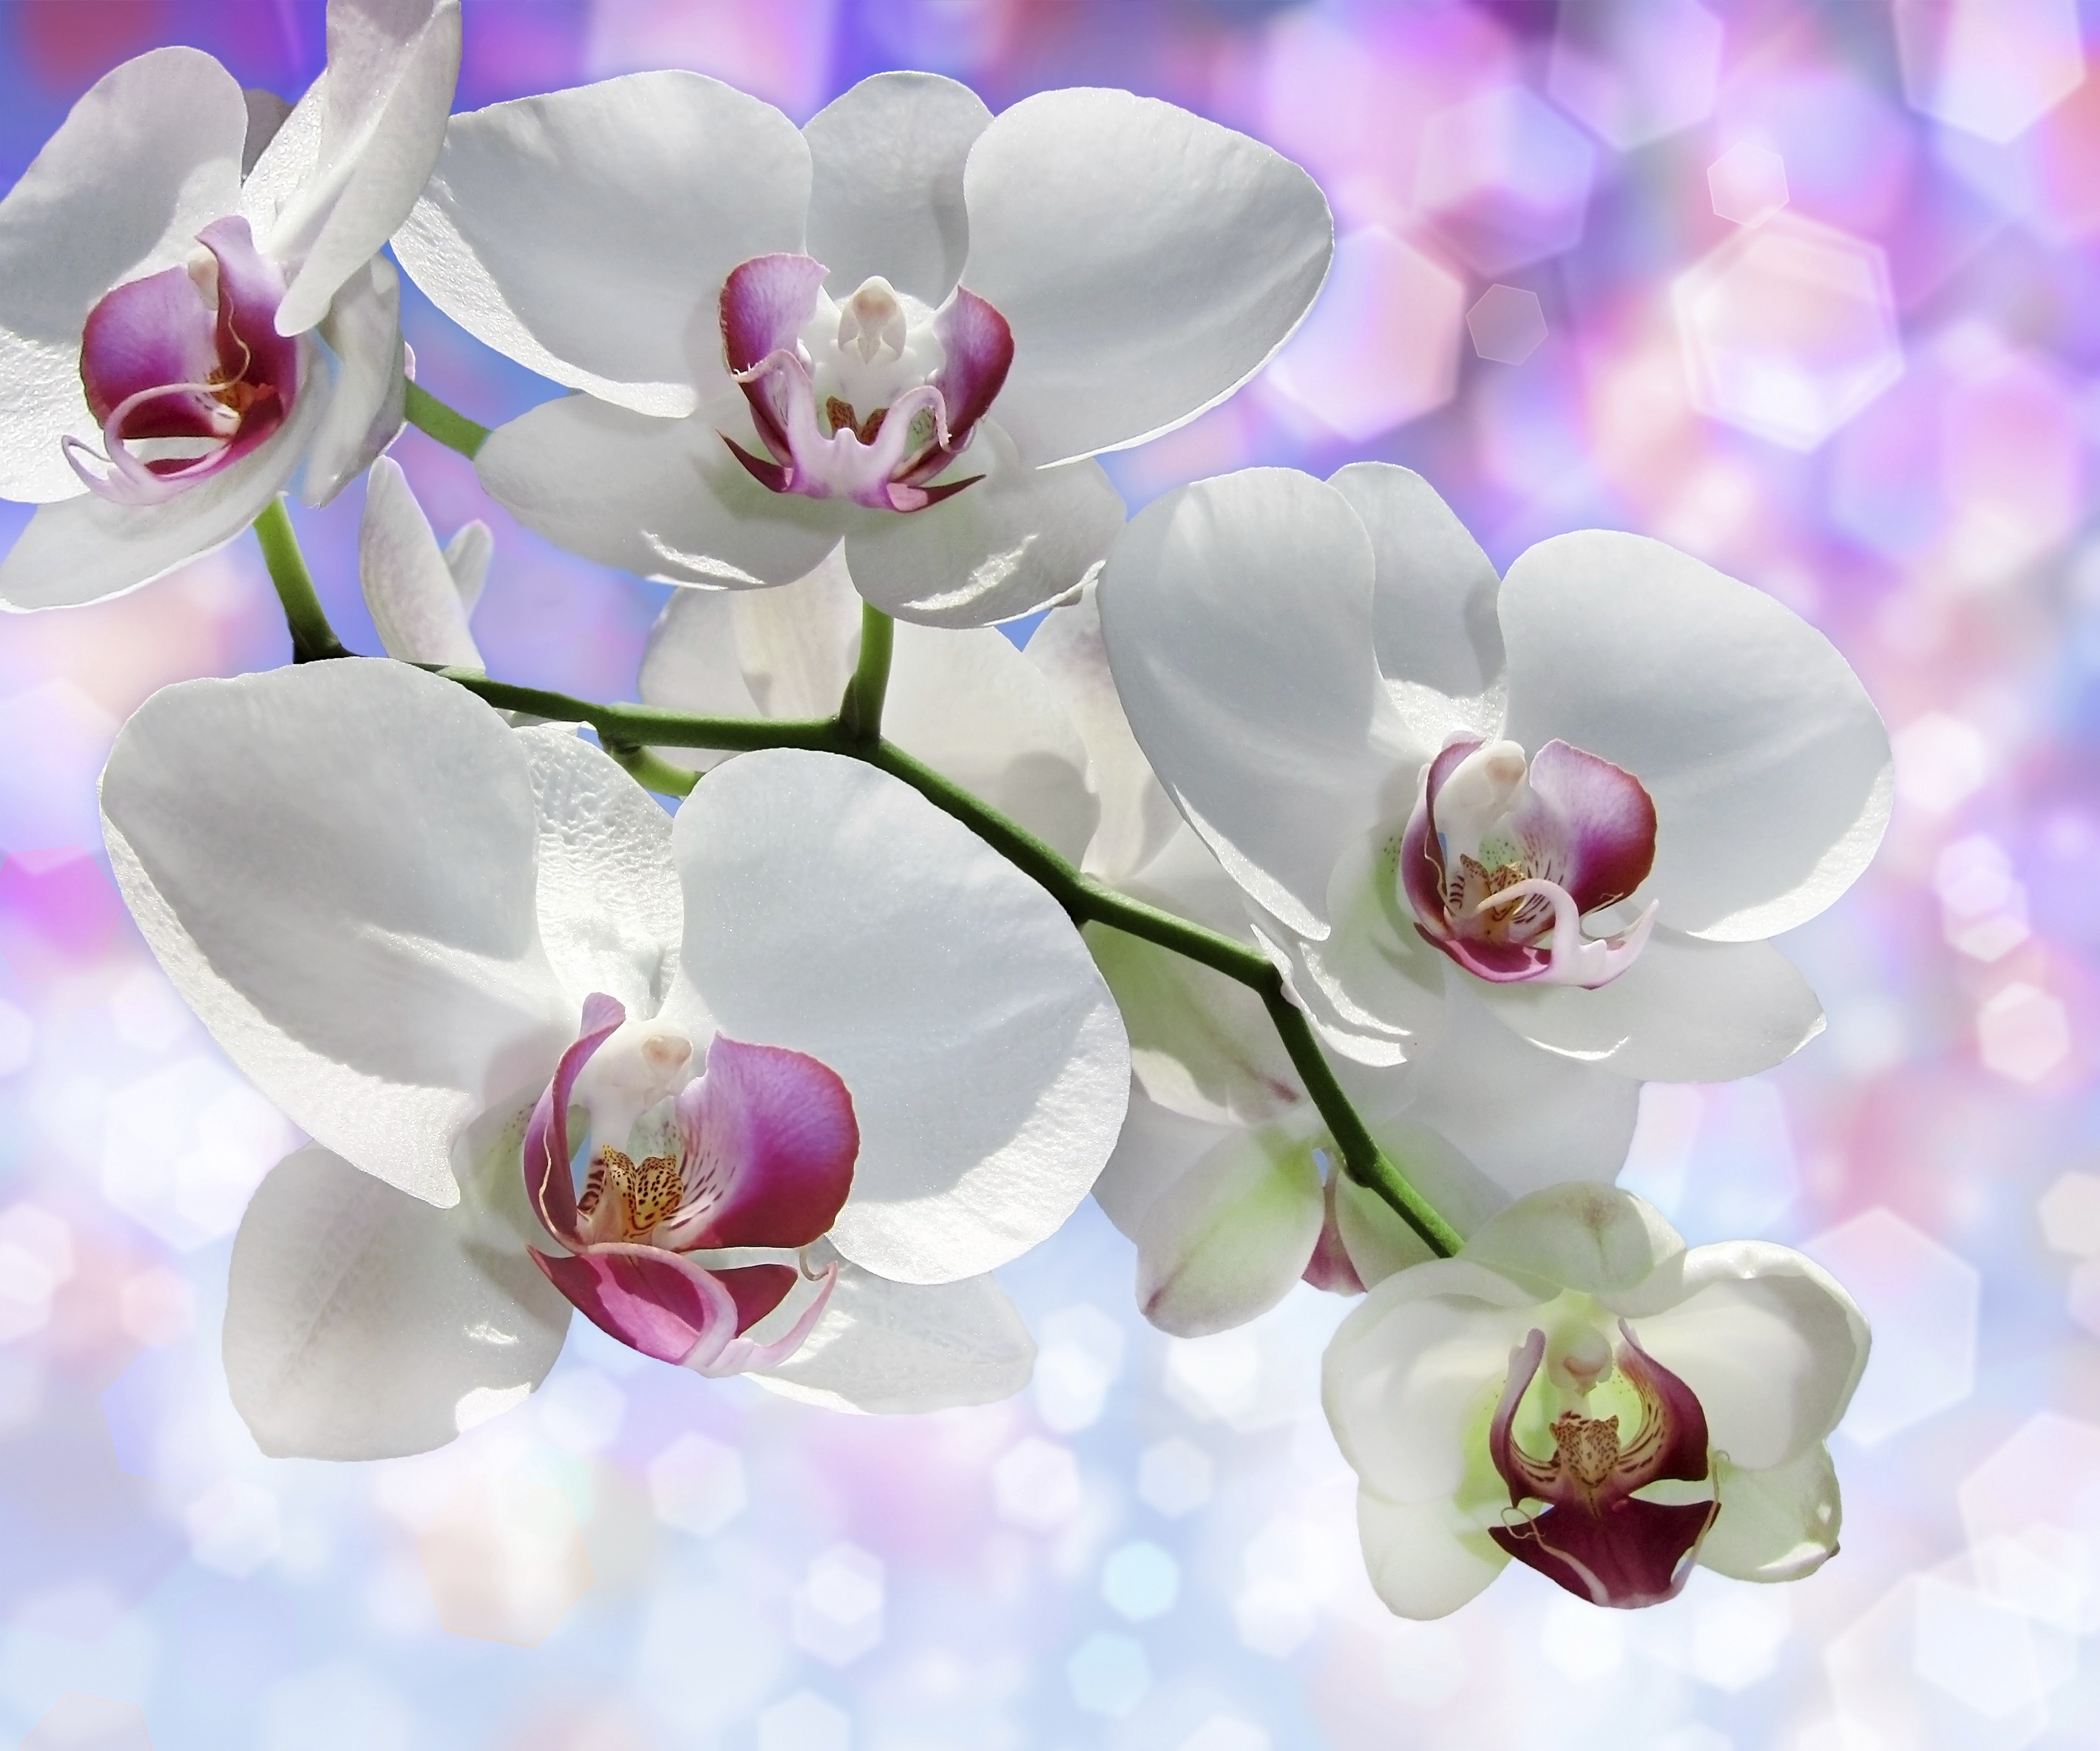 Win Tickets to Orchid Fantasy Escape: Valentine's Day Flowers and Gifts, Speakers & More